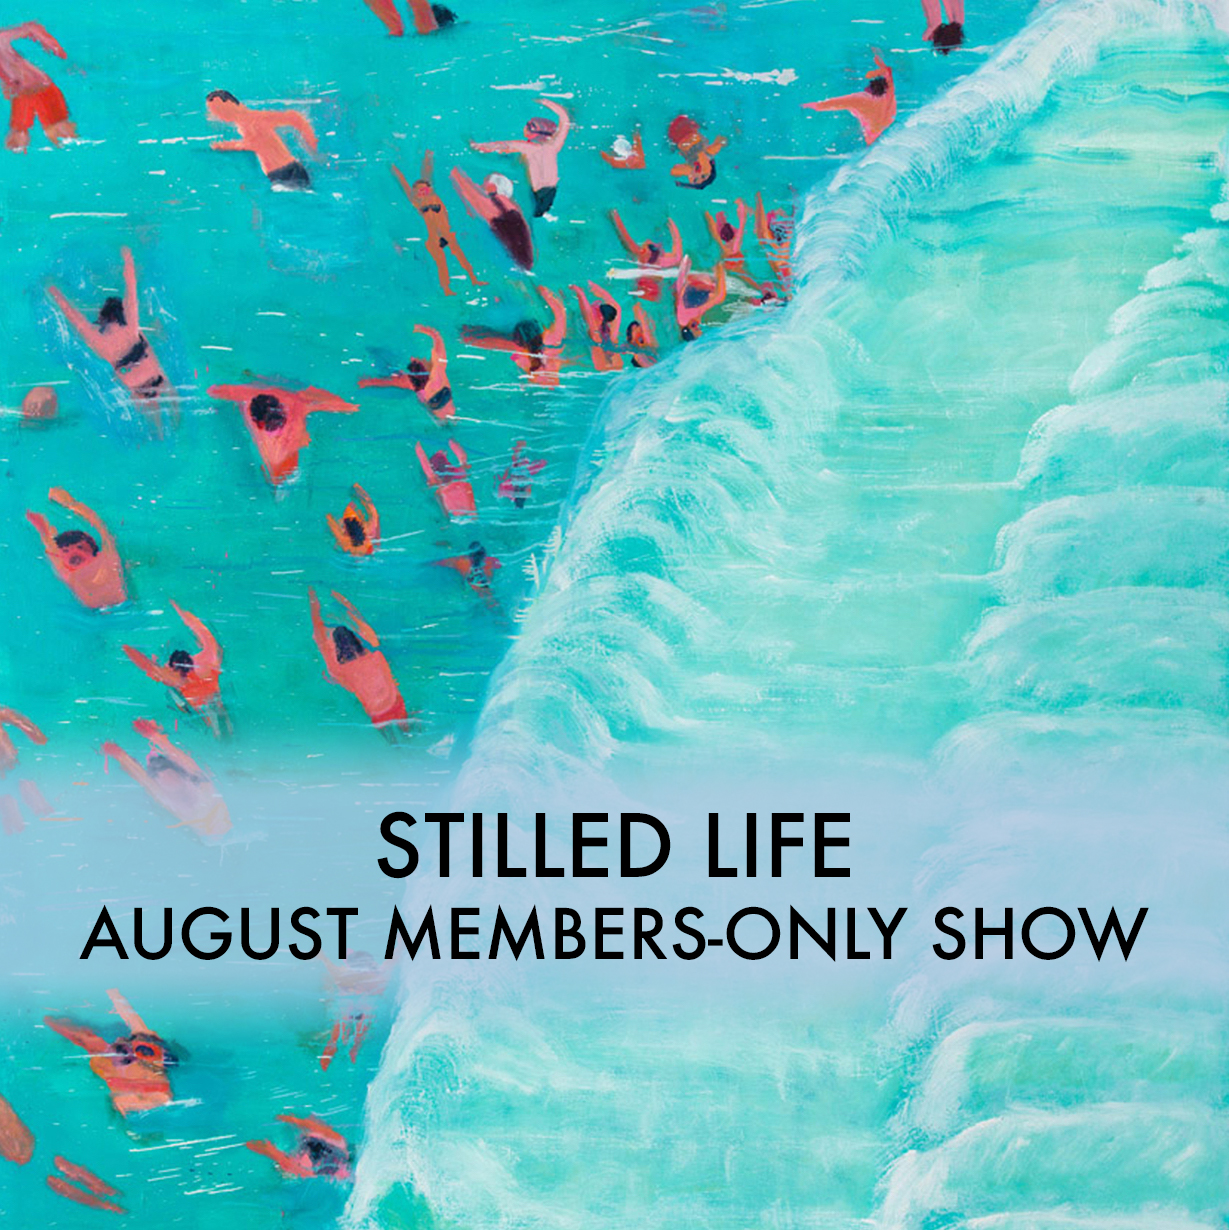 Members Only Exhibition - Gallery 1  August 4th - 15th